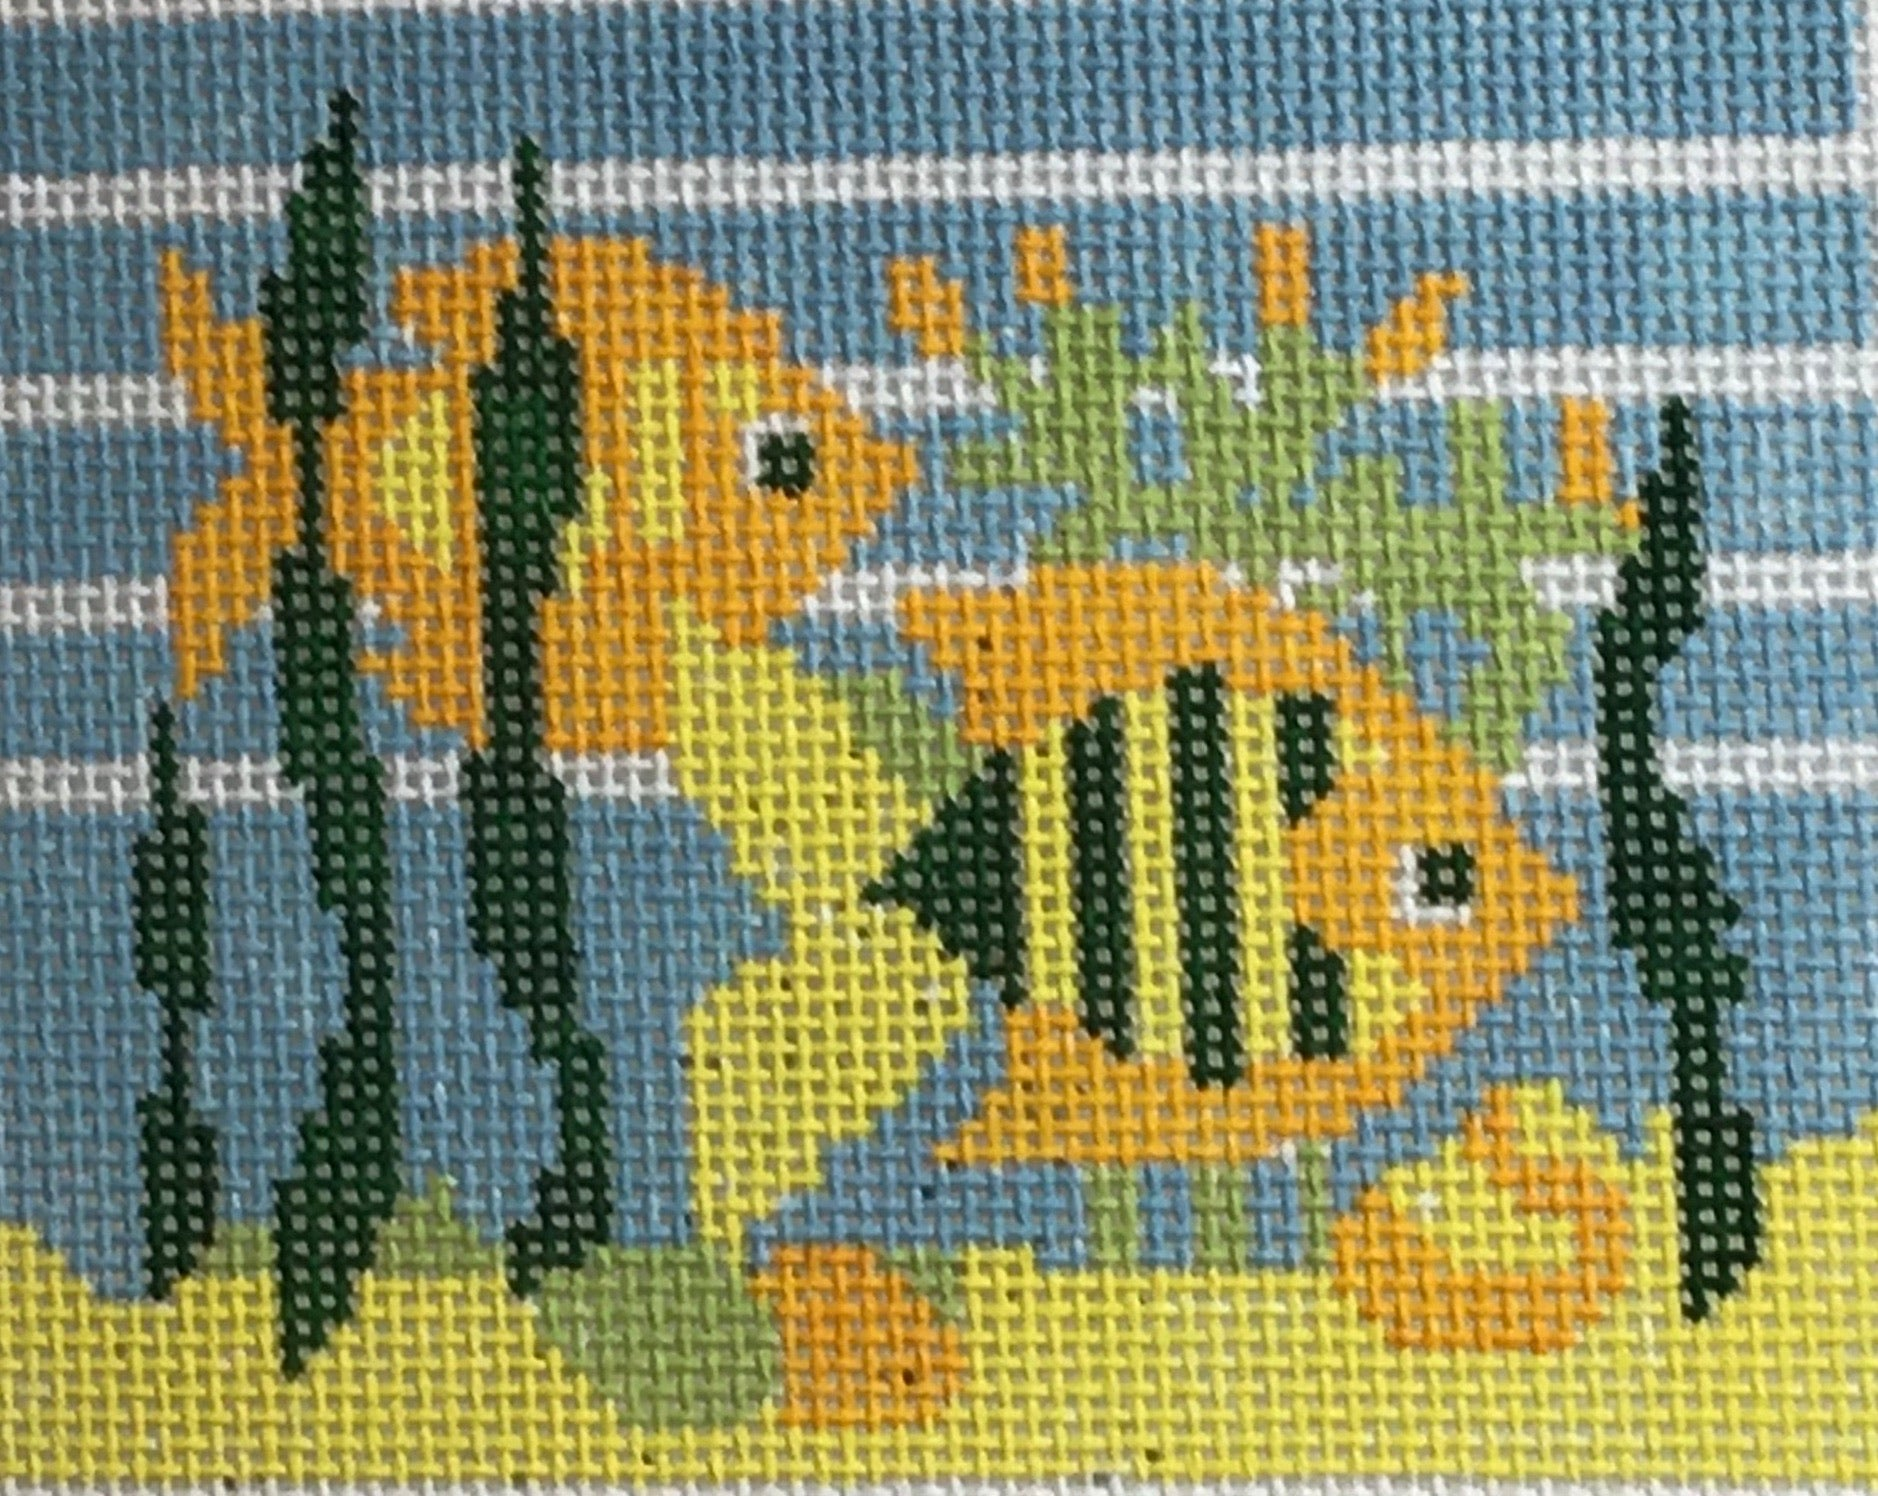 Yellow and green fish